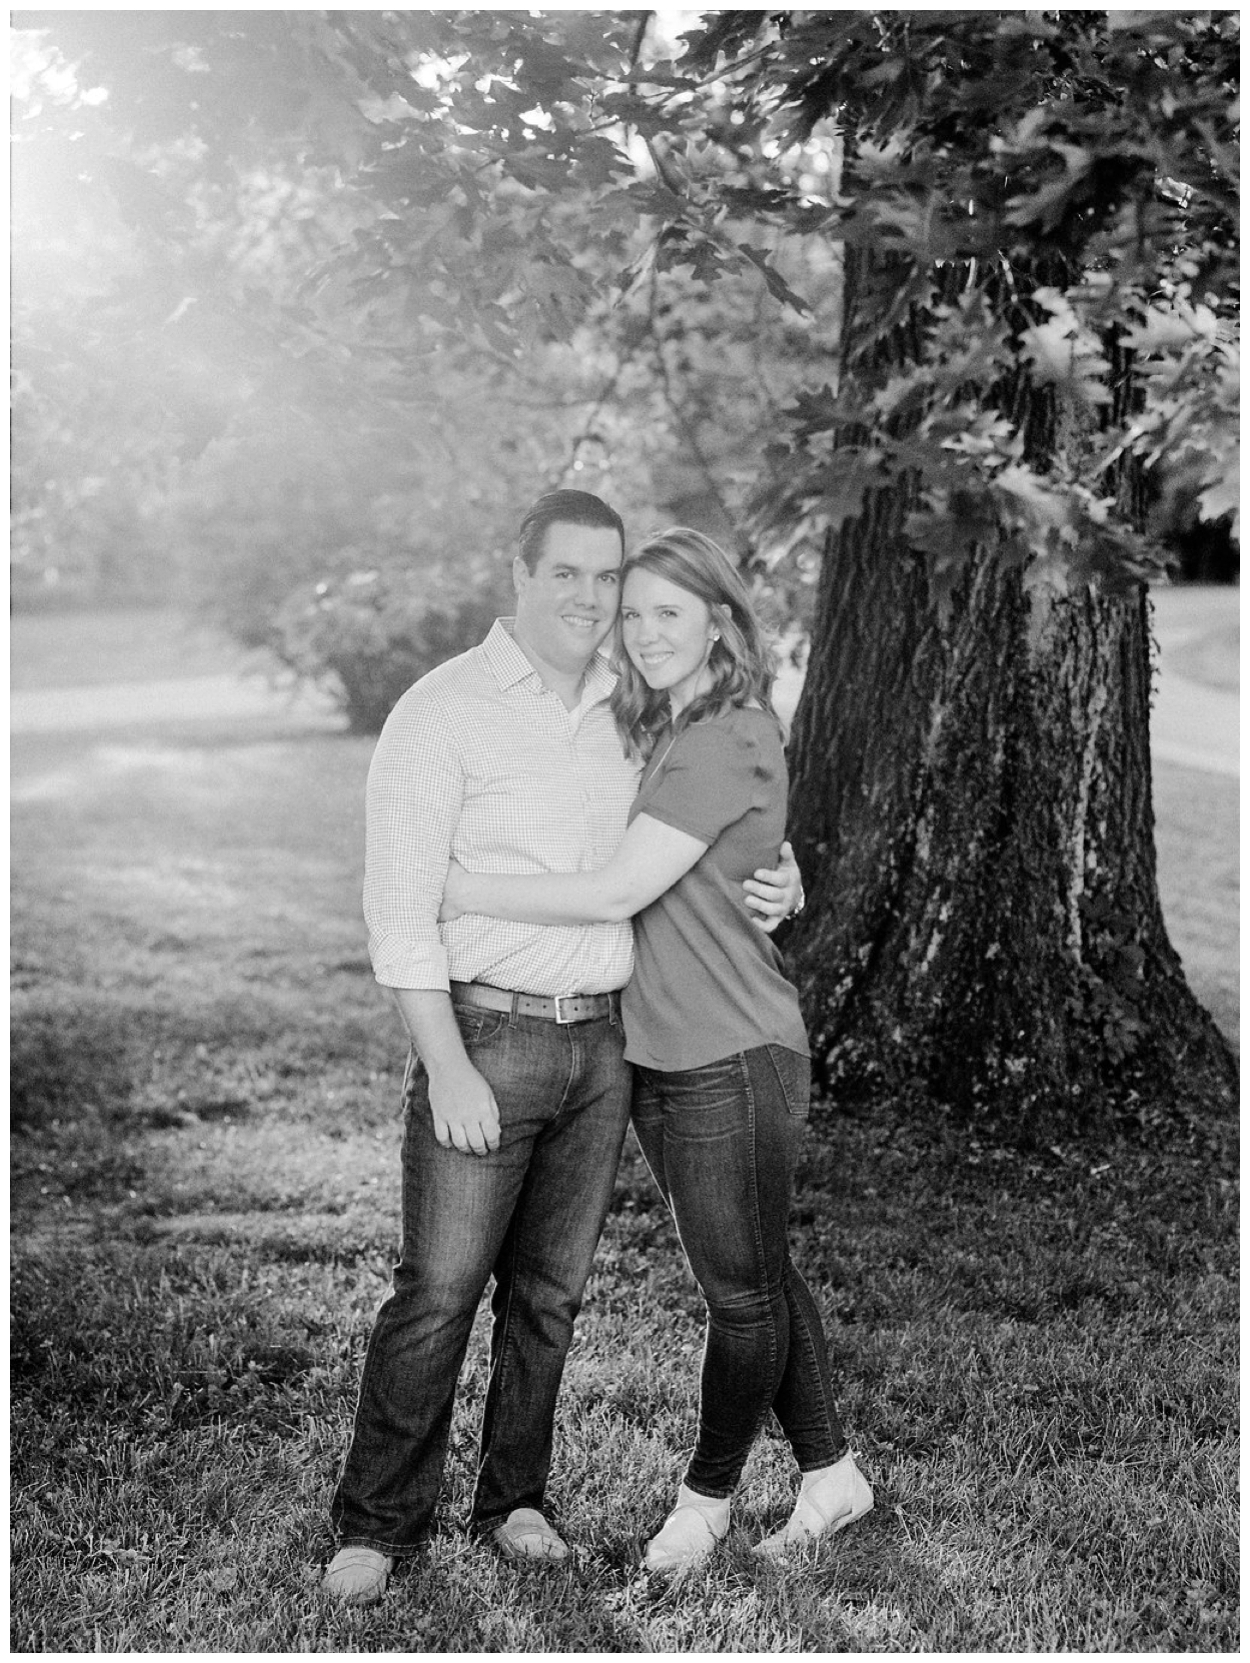 Spring engagement session at the Oatlands Historic Home in Leesburg Virginia by fine art wedding photographer Lissa Ryan Photography